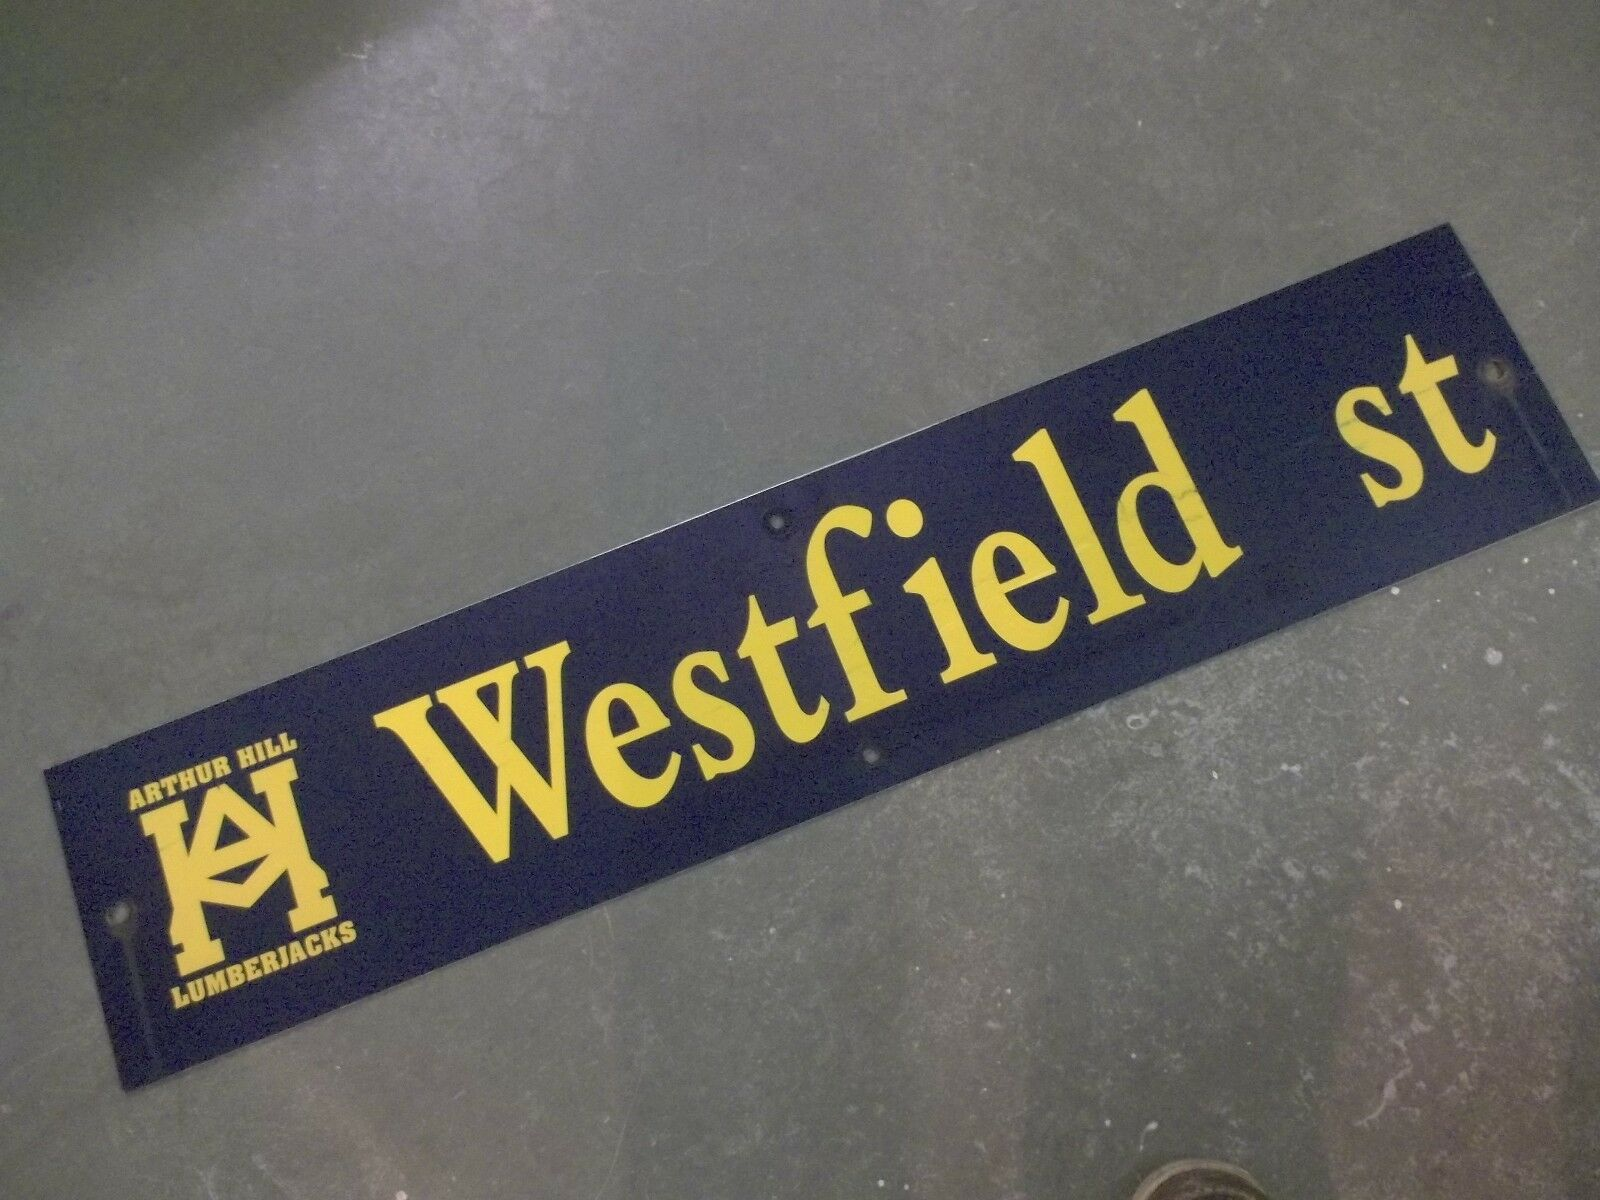 "Vintage ARTHUR HILL / WESTFIELD st STREET SIGN 42"" X 9"" GOLD LETTERING ON BLUE"